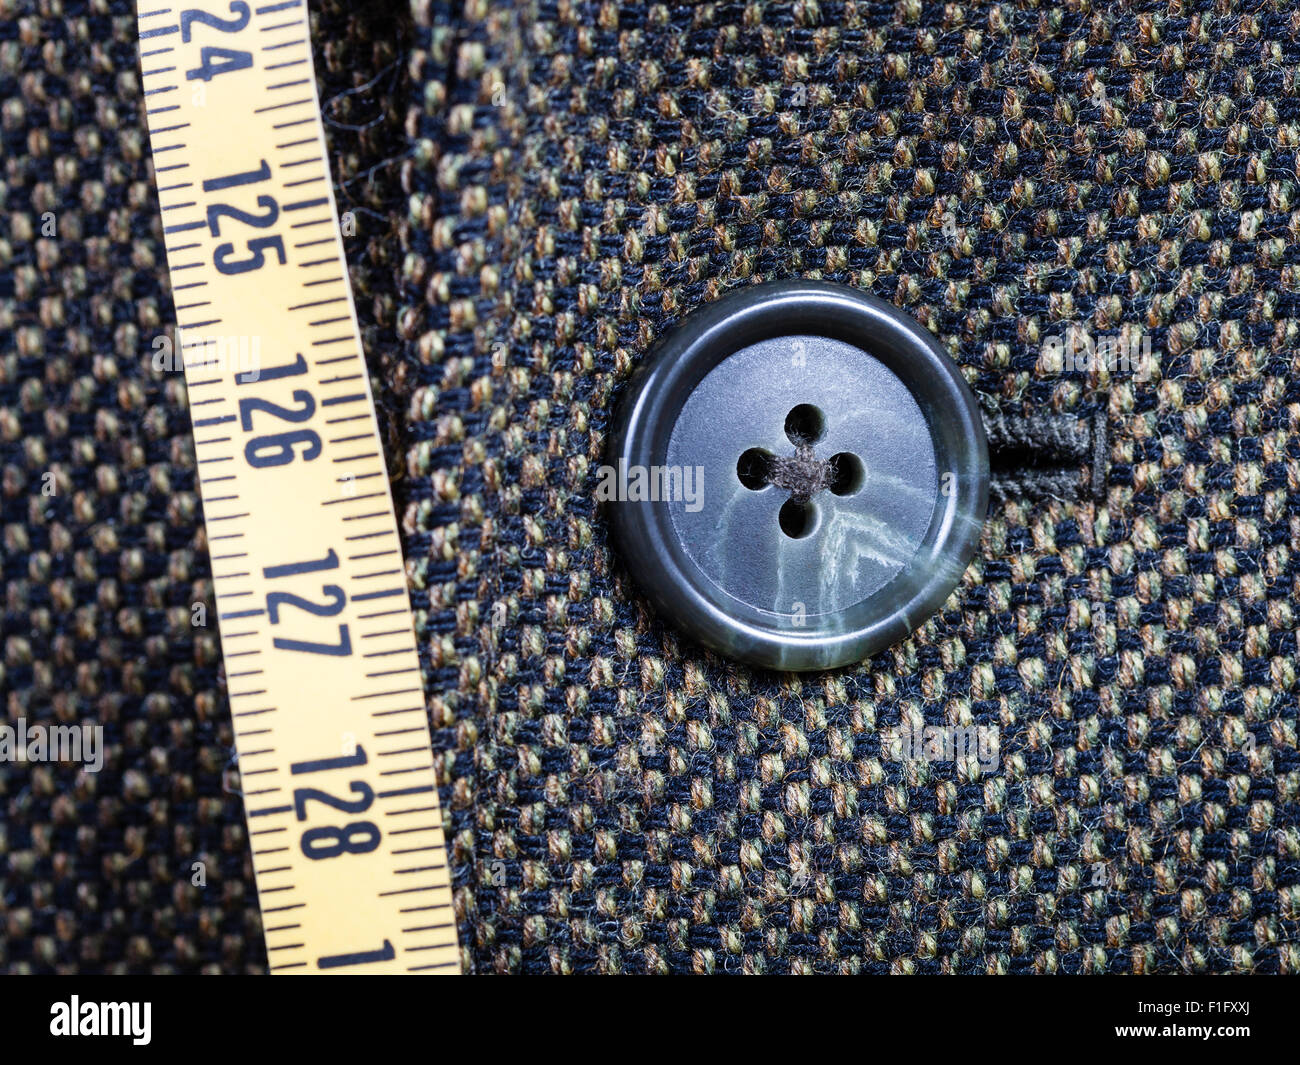 tailor measuring tape and buttoned button on tweed jacket close up - Stock Image